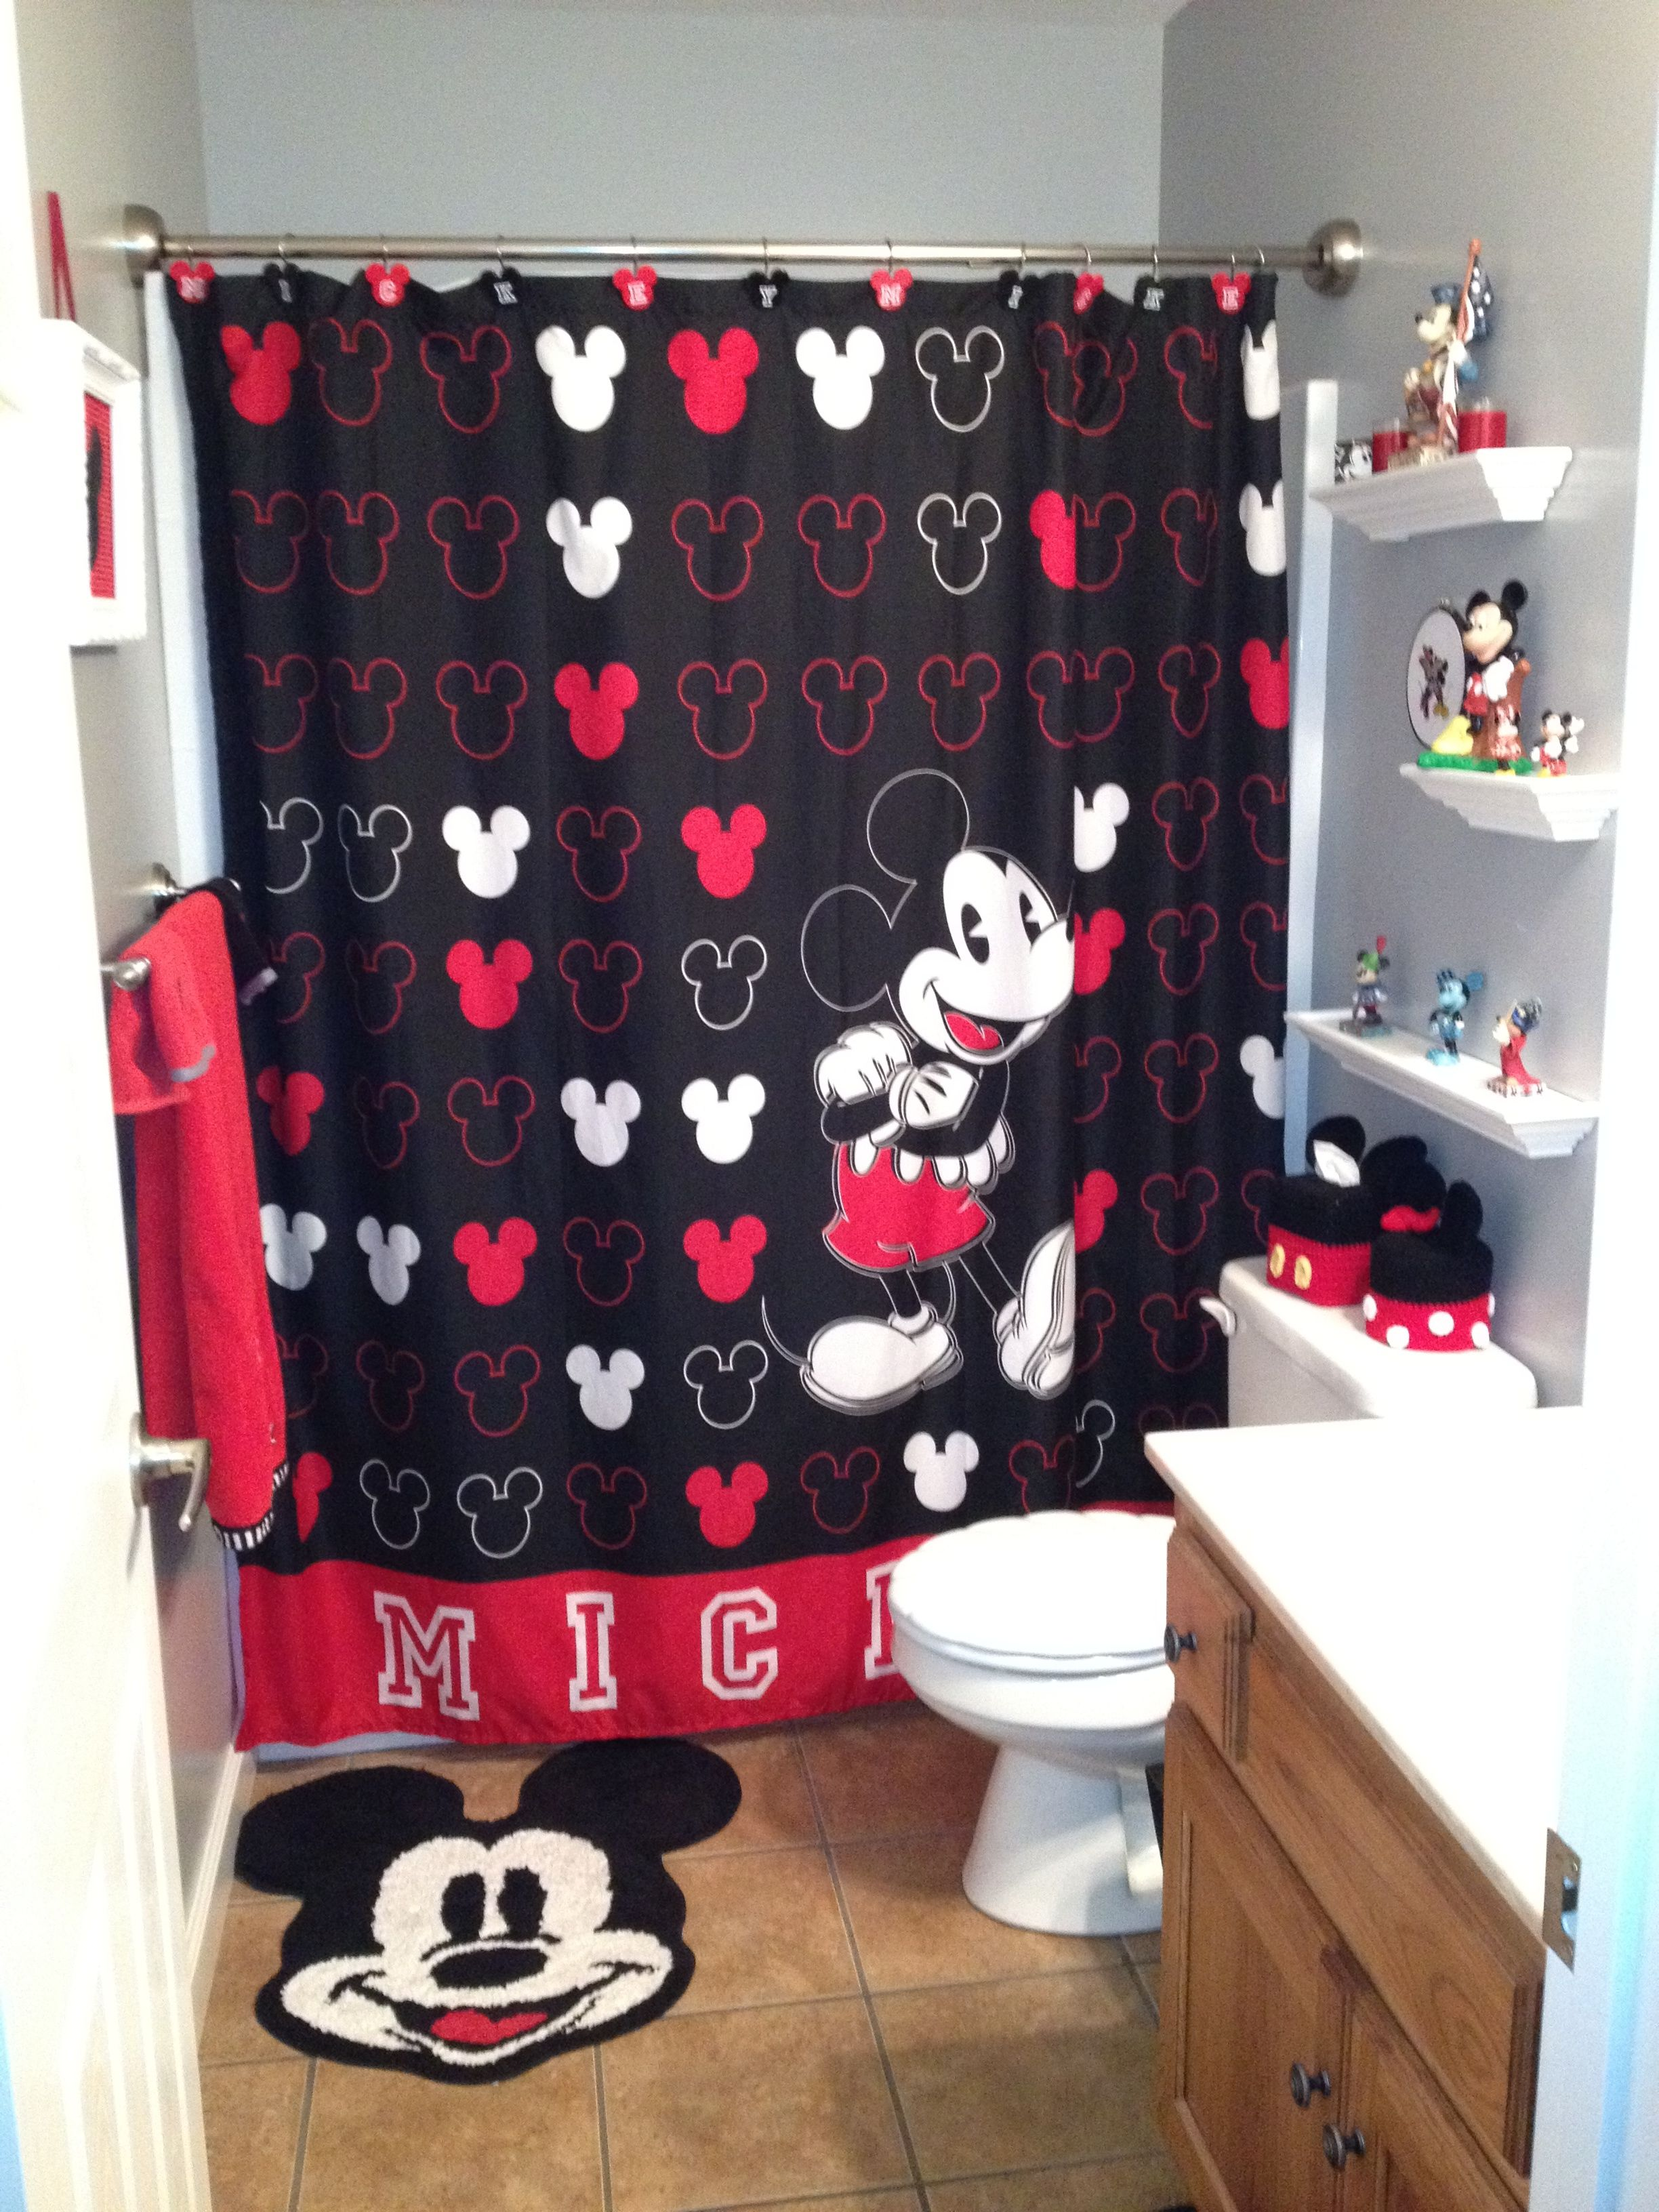 Blog Home Mickey Mouse Bathroom Minnie Mouse Bathroom Decor Minnie Mouse Bathroom